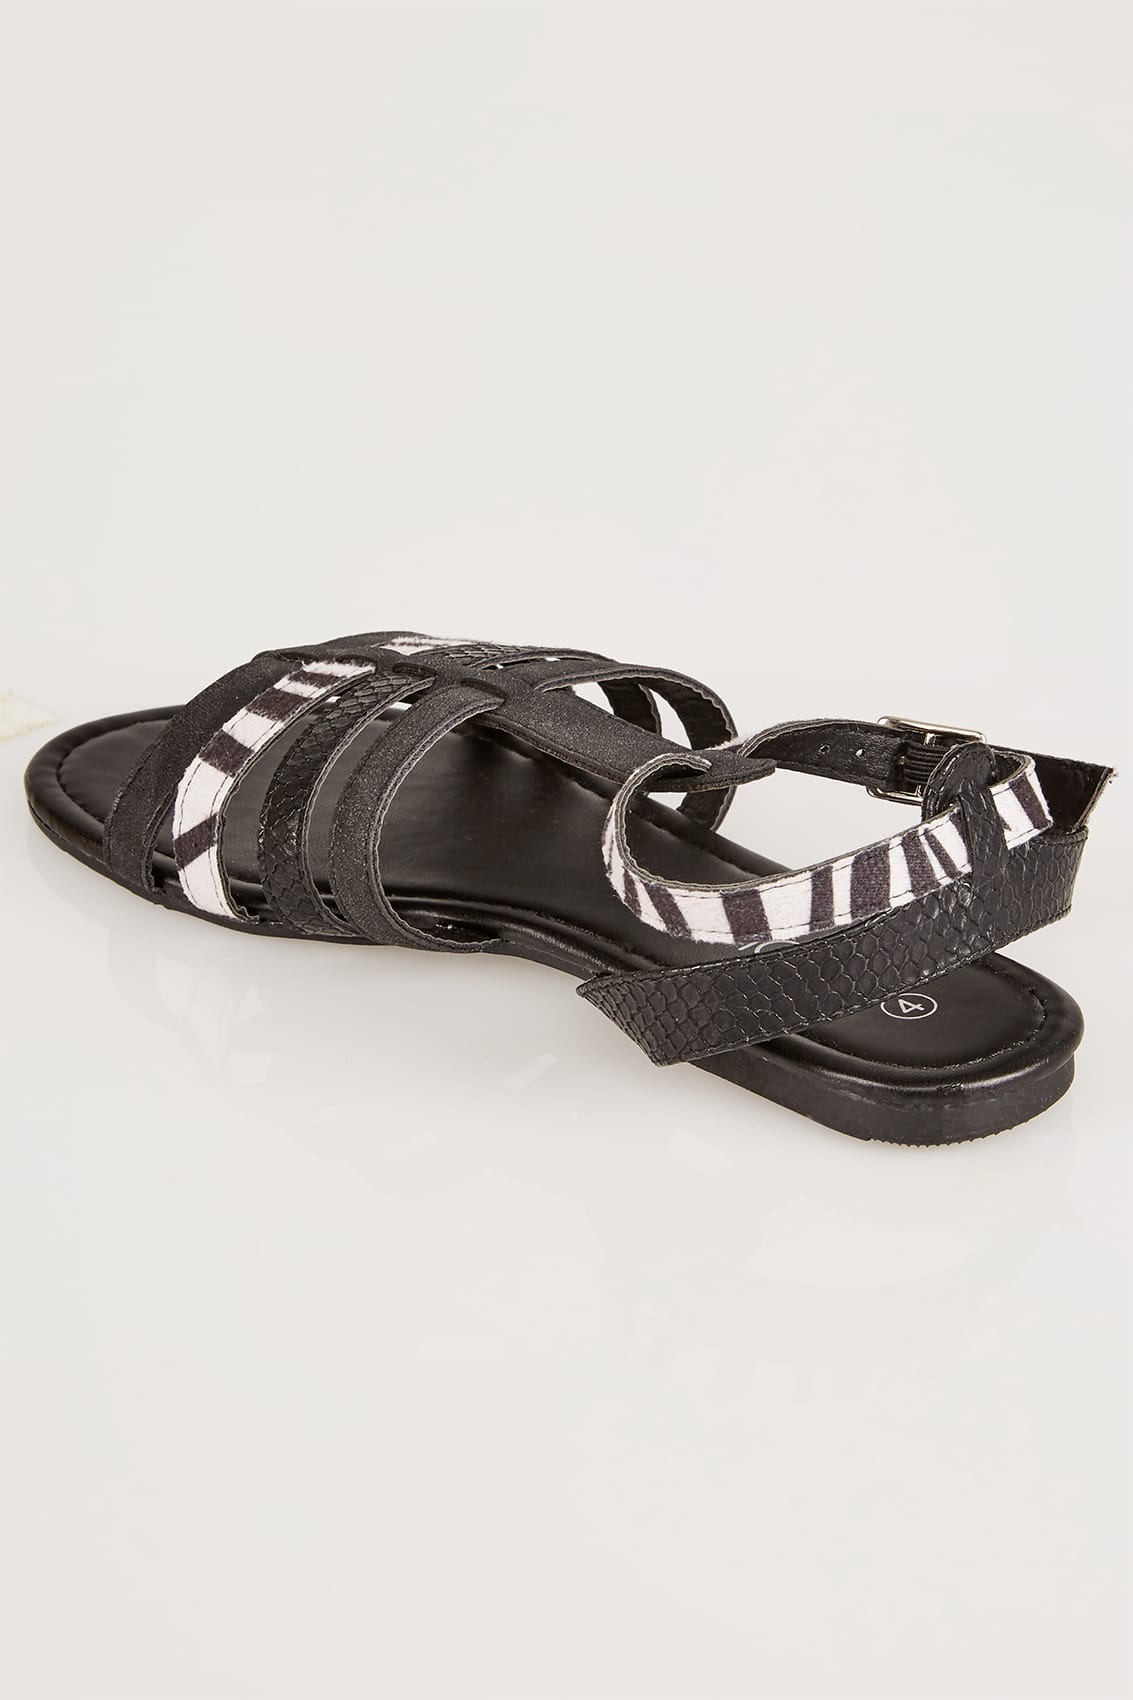 schwarz zebra muster gladiator sandalen in eee breite passform. Black Bedroom Furniture Sets. Home Design Ideas